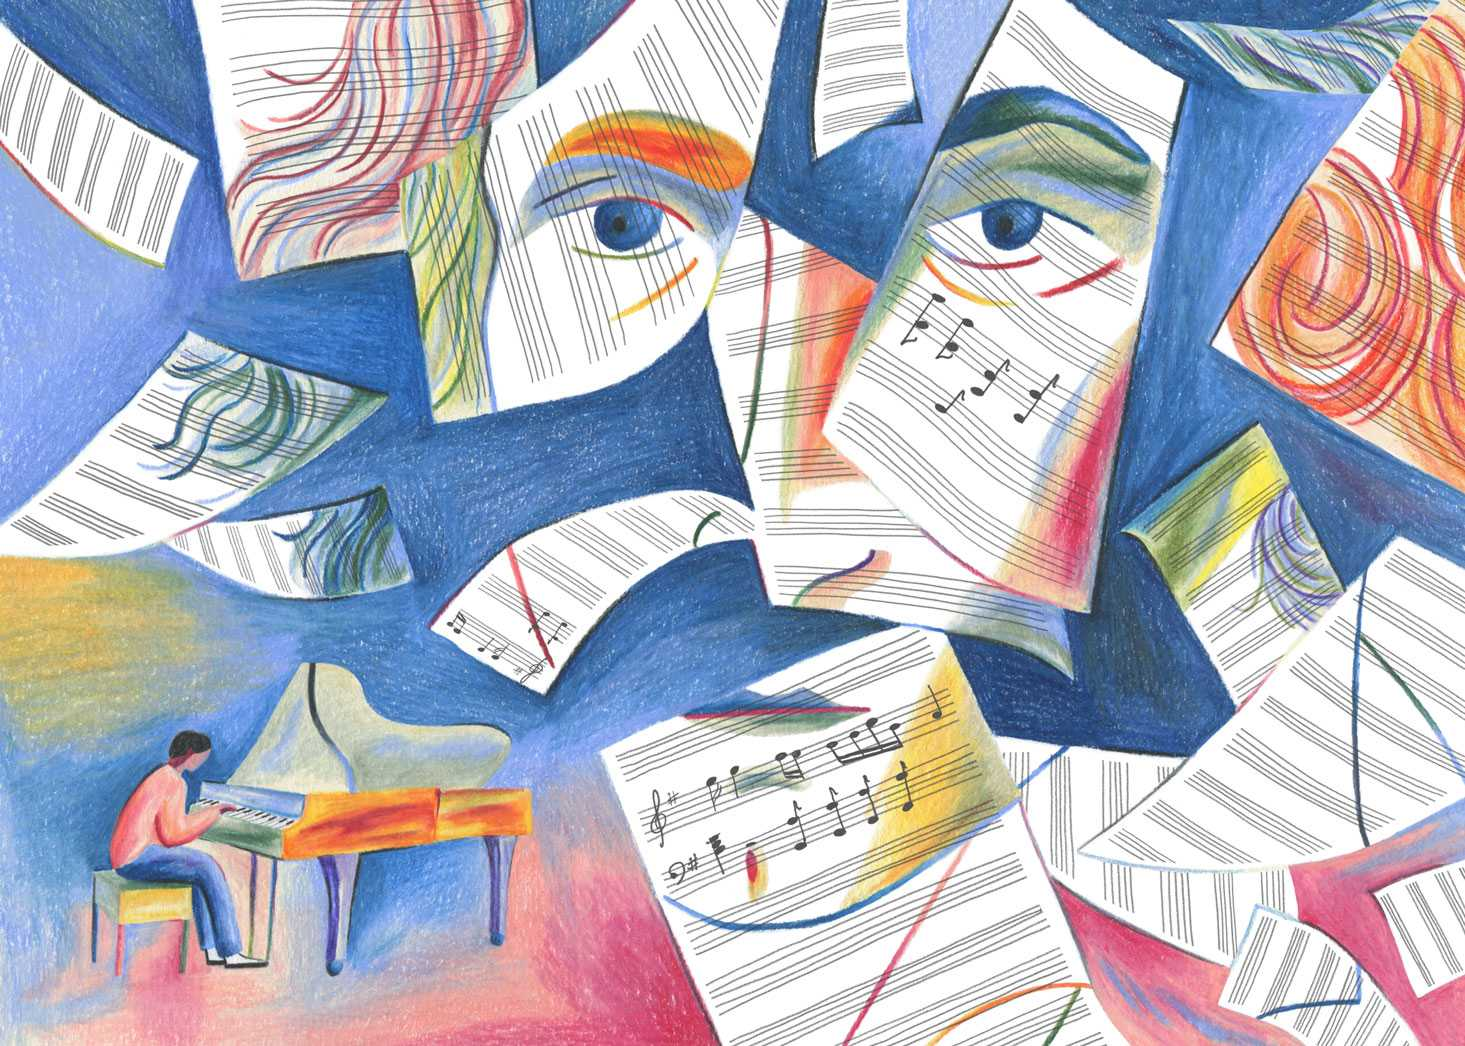 NYTimes-Art-Leisure-Beethoven-Tatjana-Prenzel-web